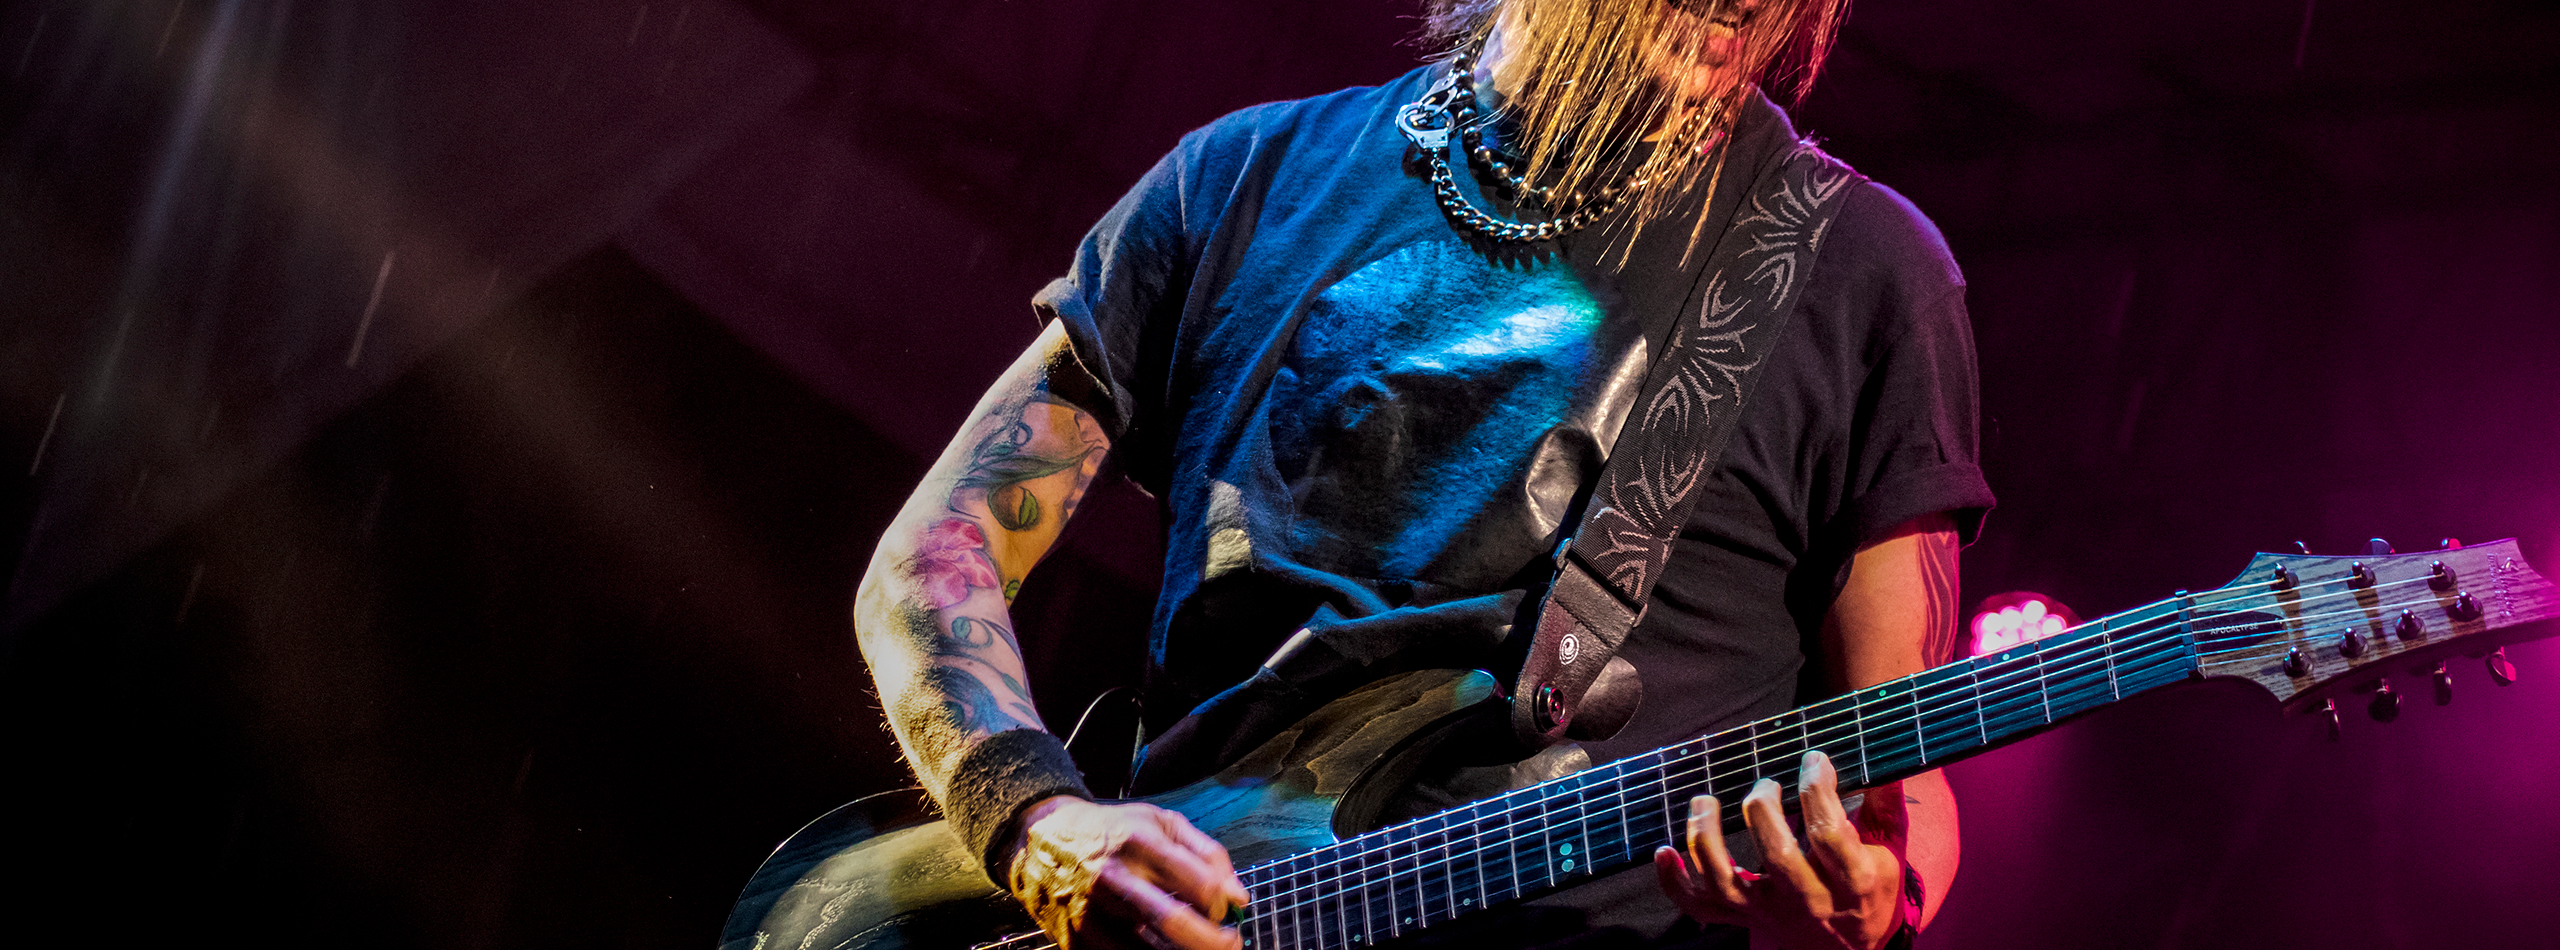 Guitar Masterclass Mexico Header